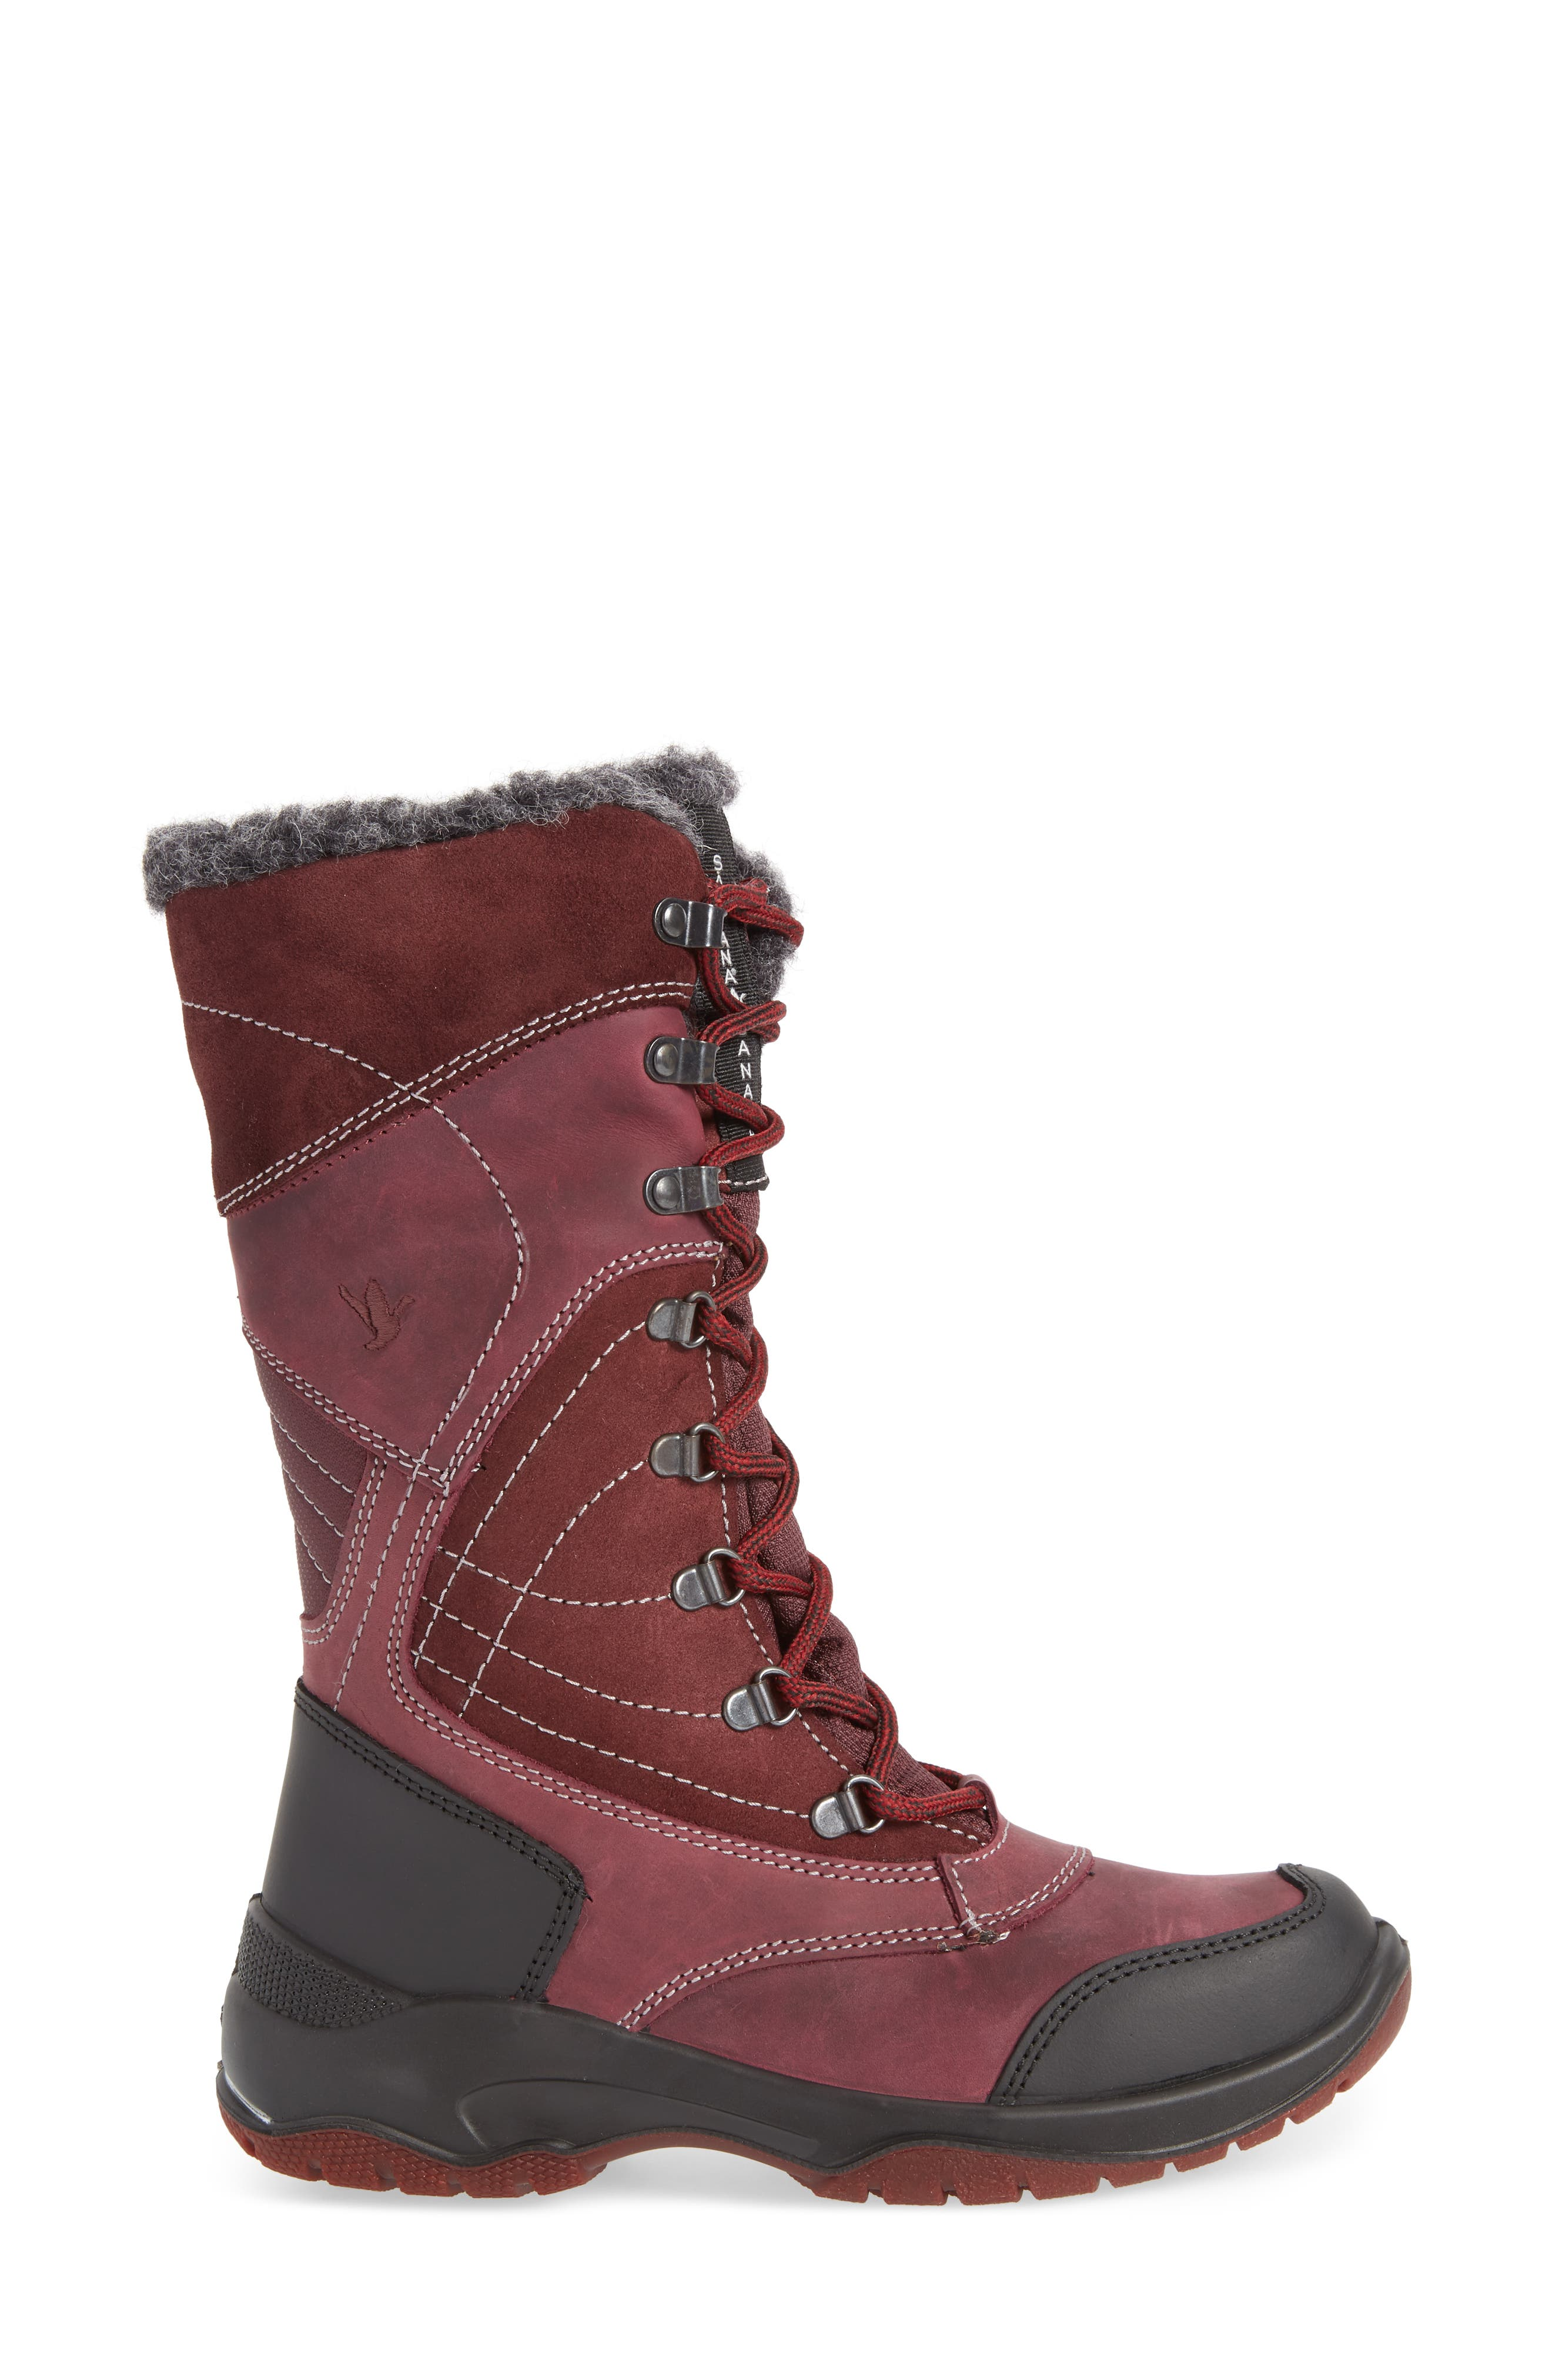 Topspeed Faux Fur Lined Waterproof Boot,                             Alternate thumbnail 3, color,                             BORDEAUX SUEDE